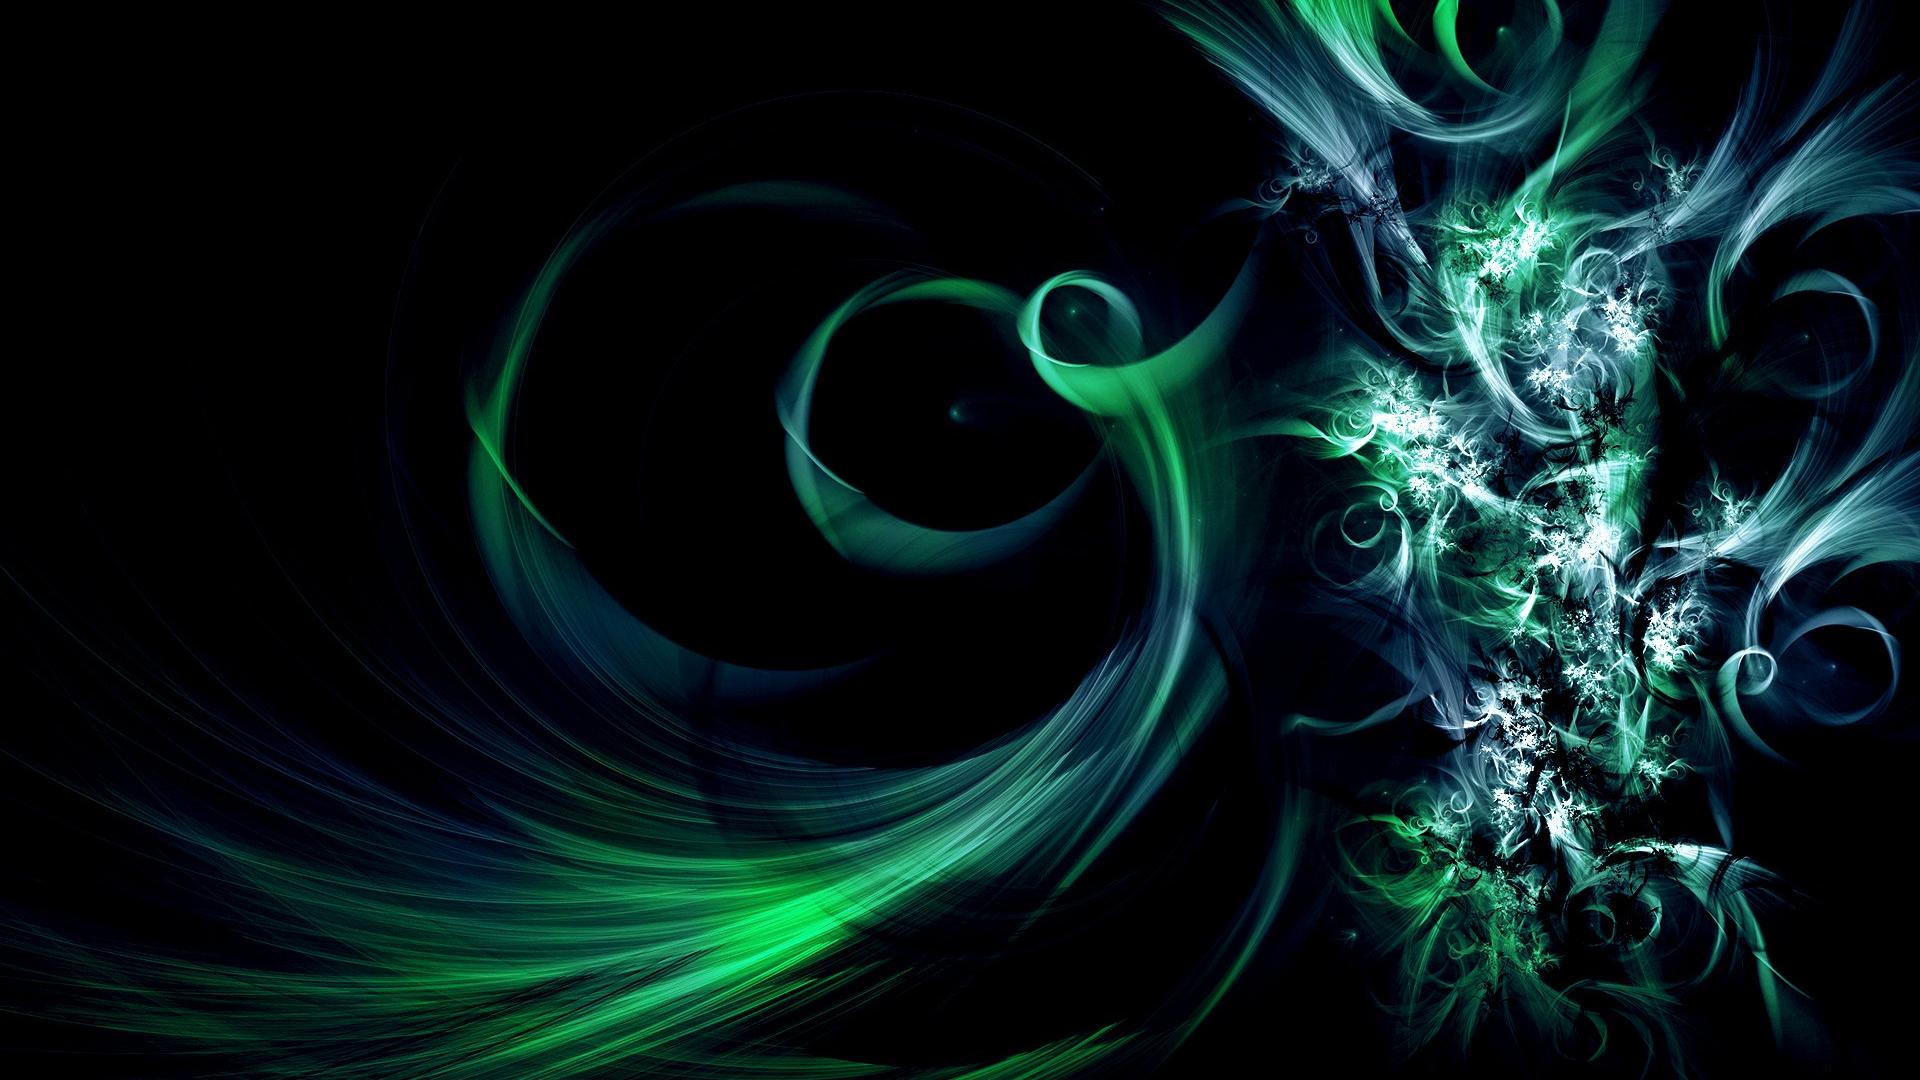 Abstract, Cool, Background-Cool Abstract Wallpaper